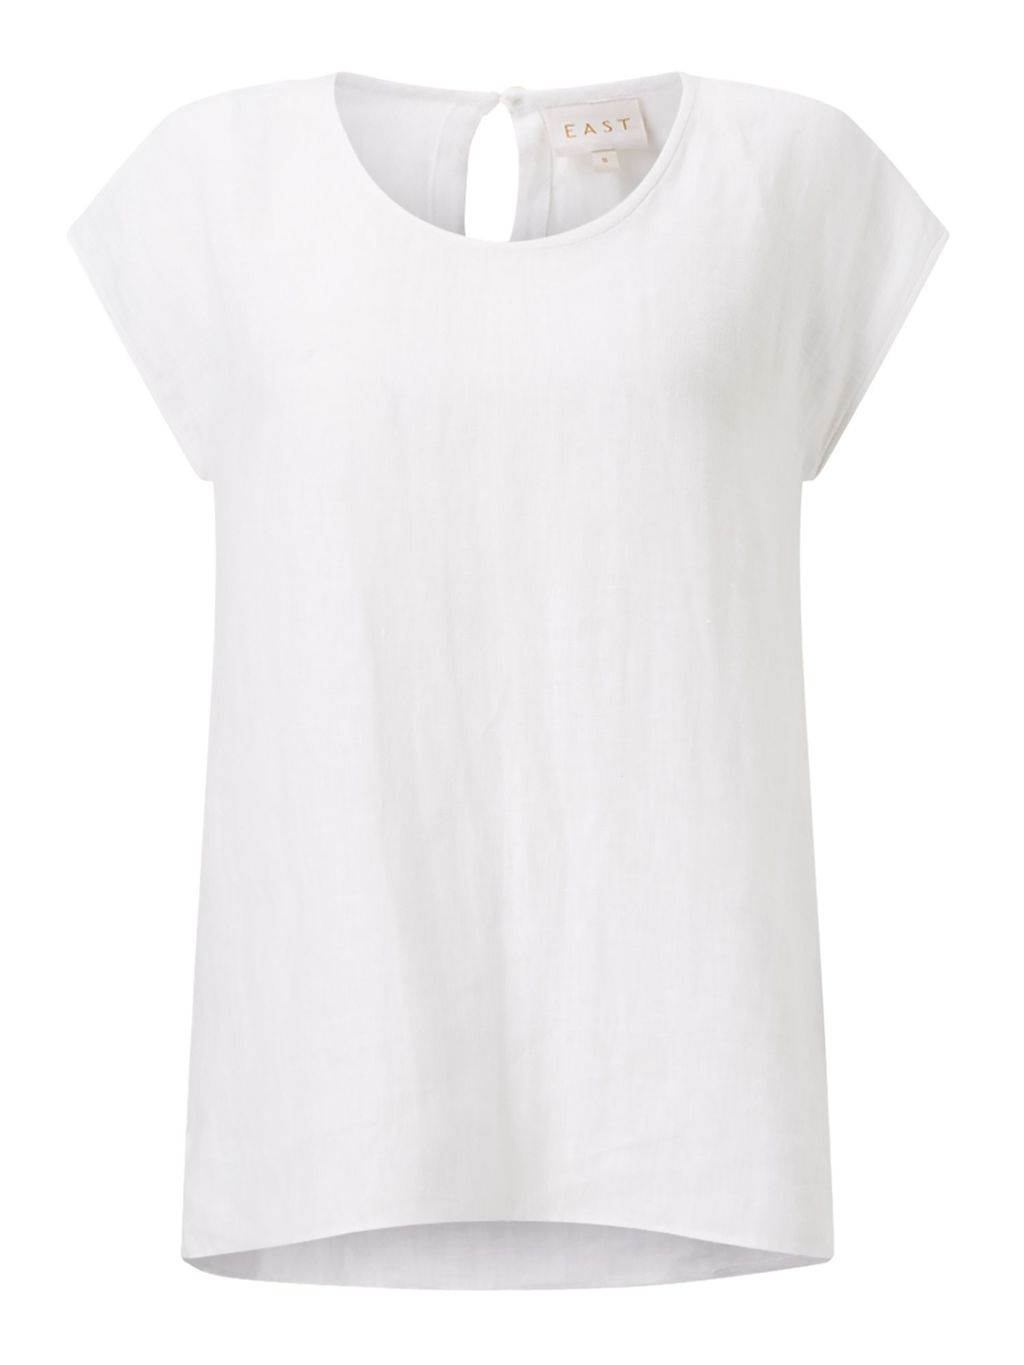 Linen Shell Top, White - sleeve style: capped; pattern: plain; predominant colour: white; occasions: casual; length: standard; style: top; fibres: linen - 100%; fit: body skimming; neckline: crew; sleeve length: short sleeve; texture group: linen; pattern type: fabric; season: s/s 2016